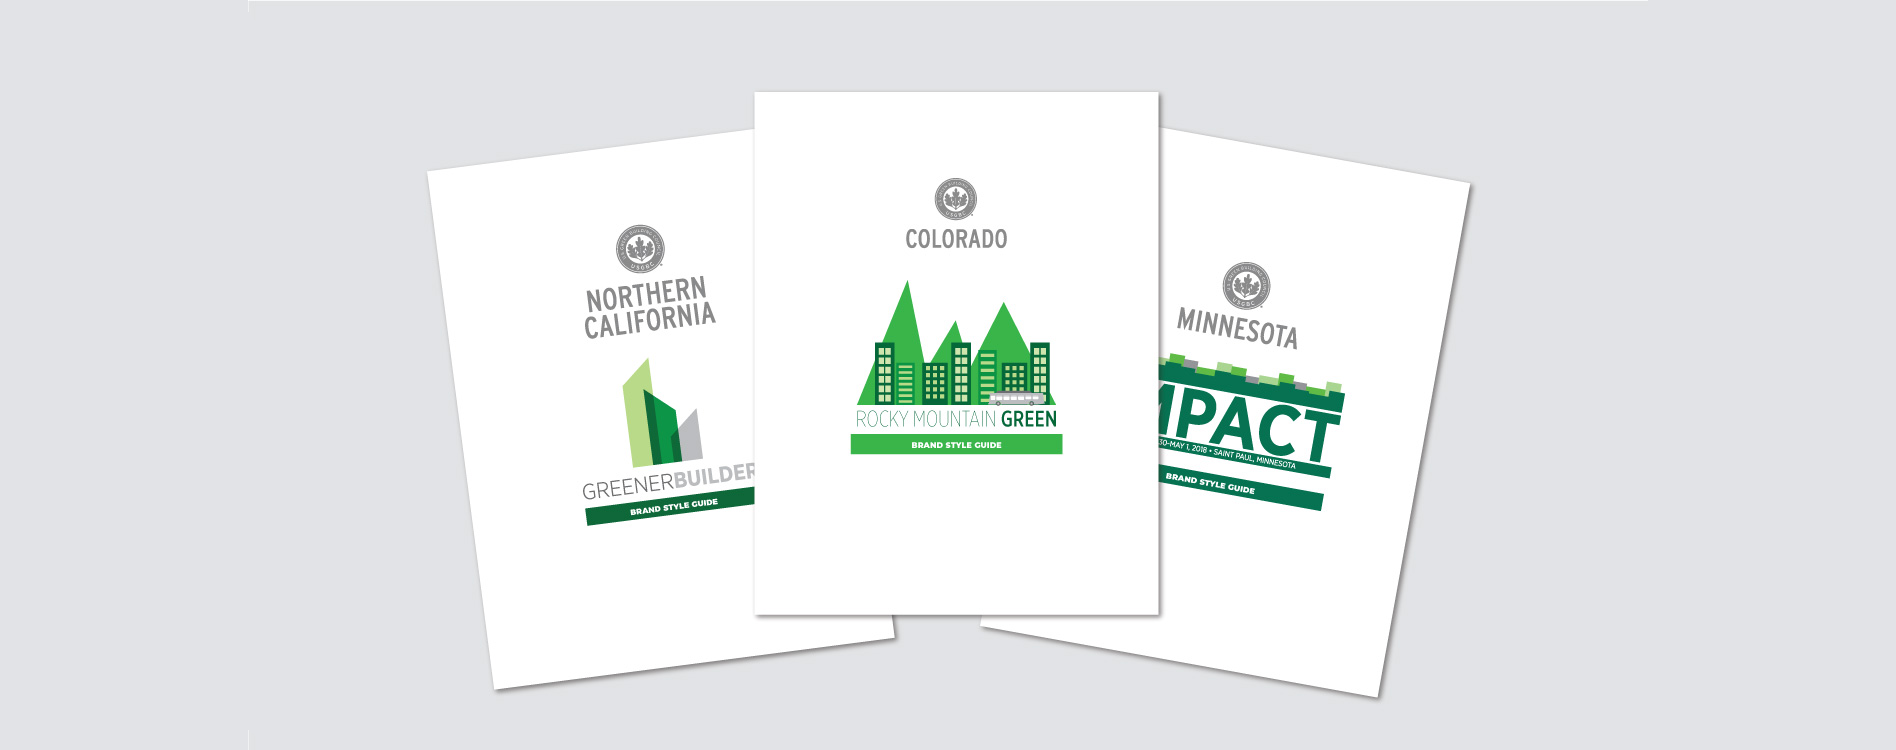 Creating cohesive branding for local events